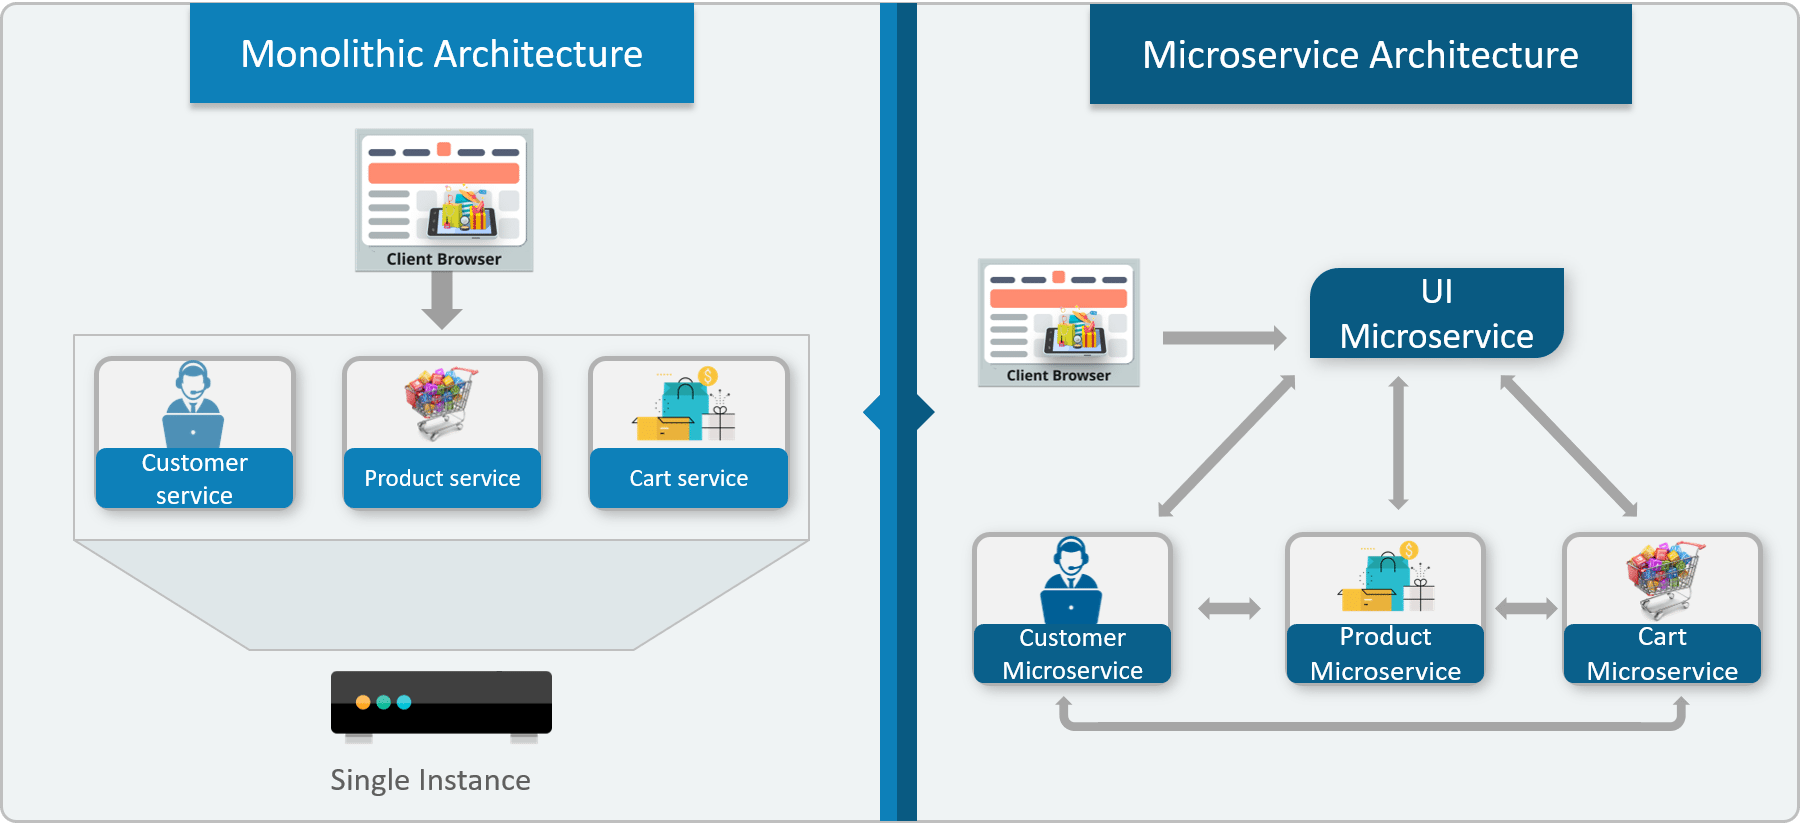 Monolithic Architecture vs Microservices